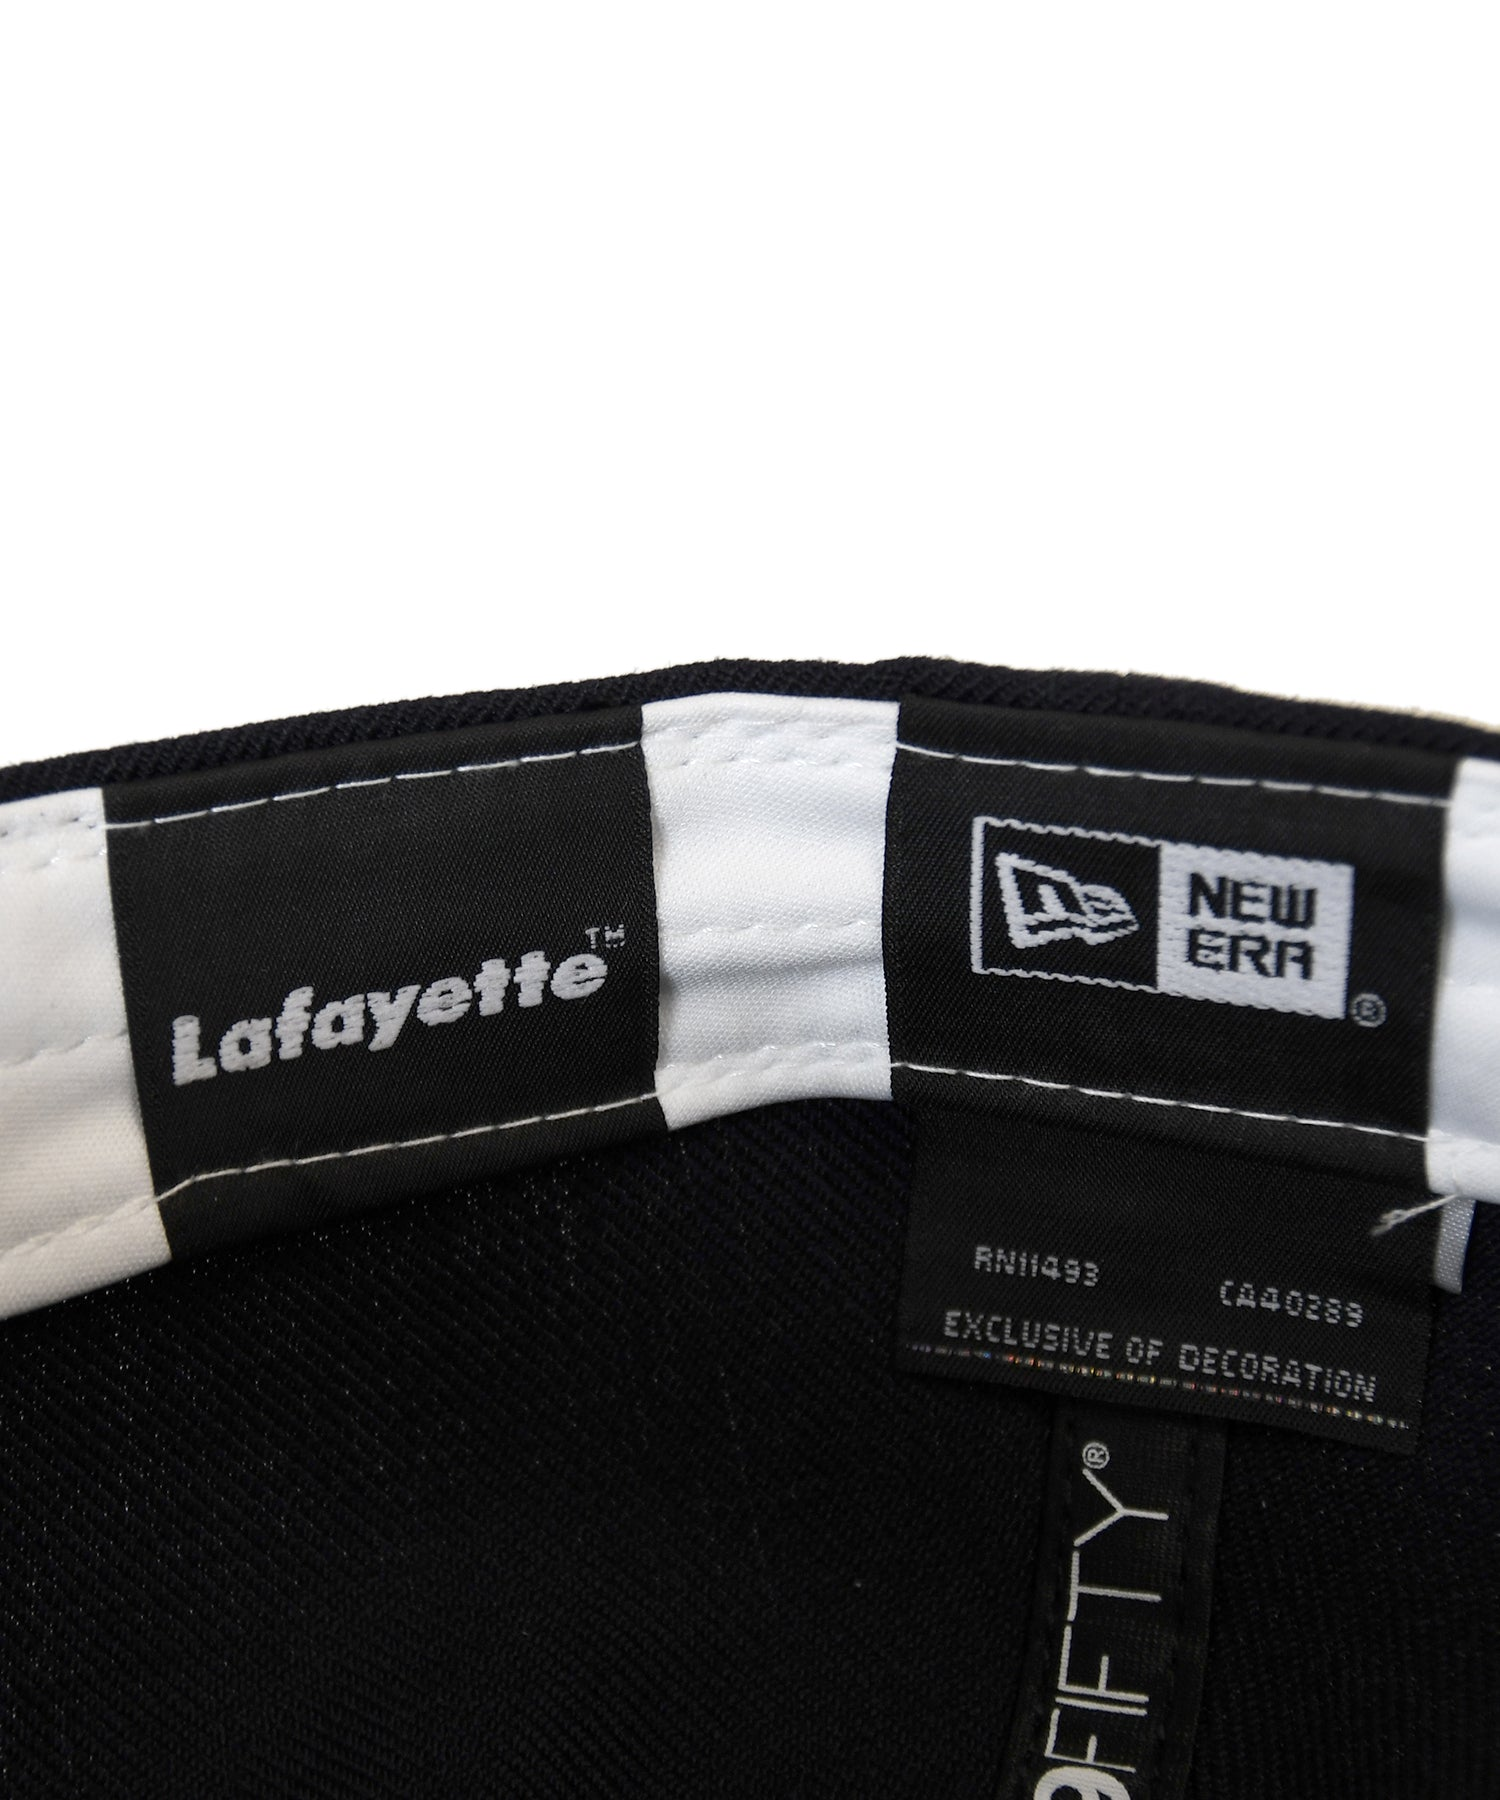 Lafayette × NEW ERA CROSS FLAG LF LOGO 59FIFTY FITTED CAP LS201403 NAVY